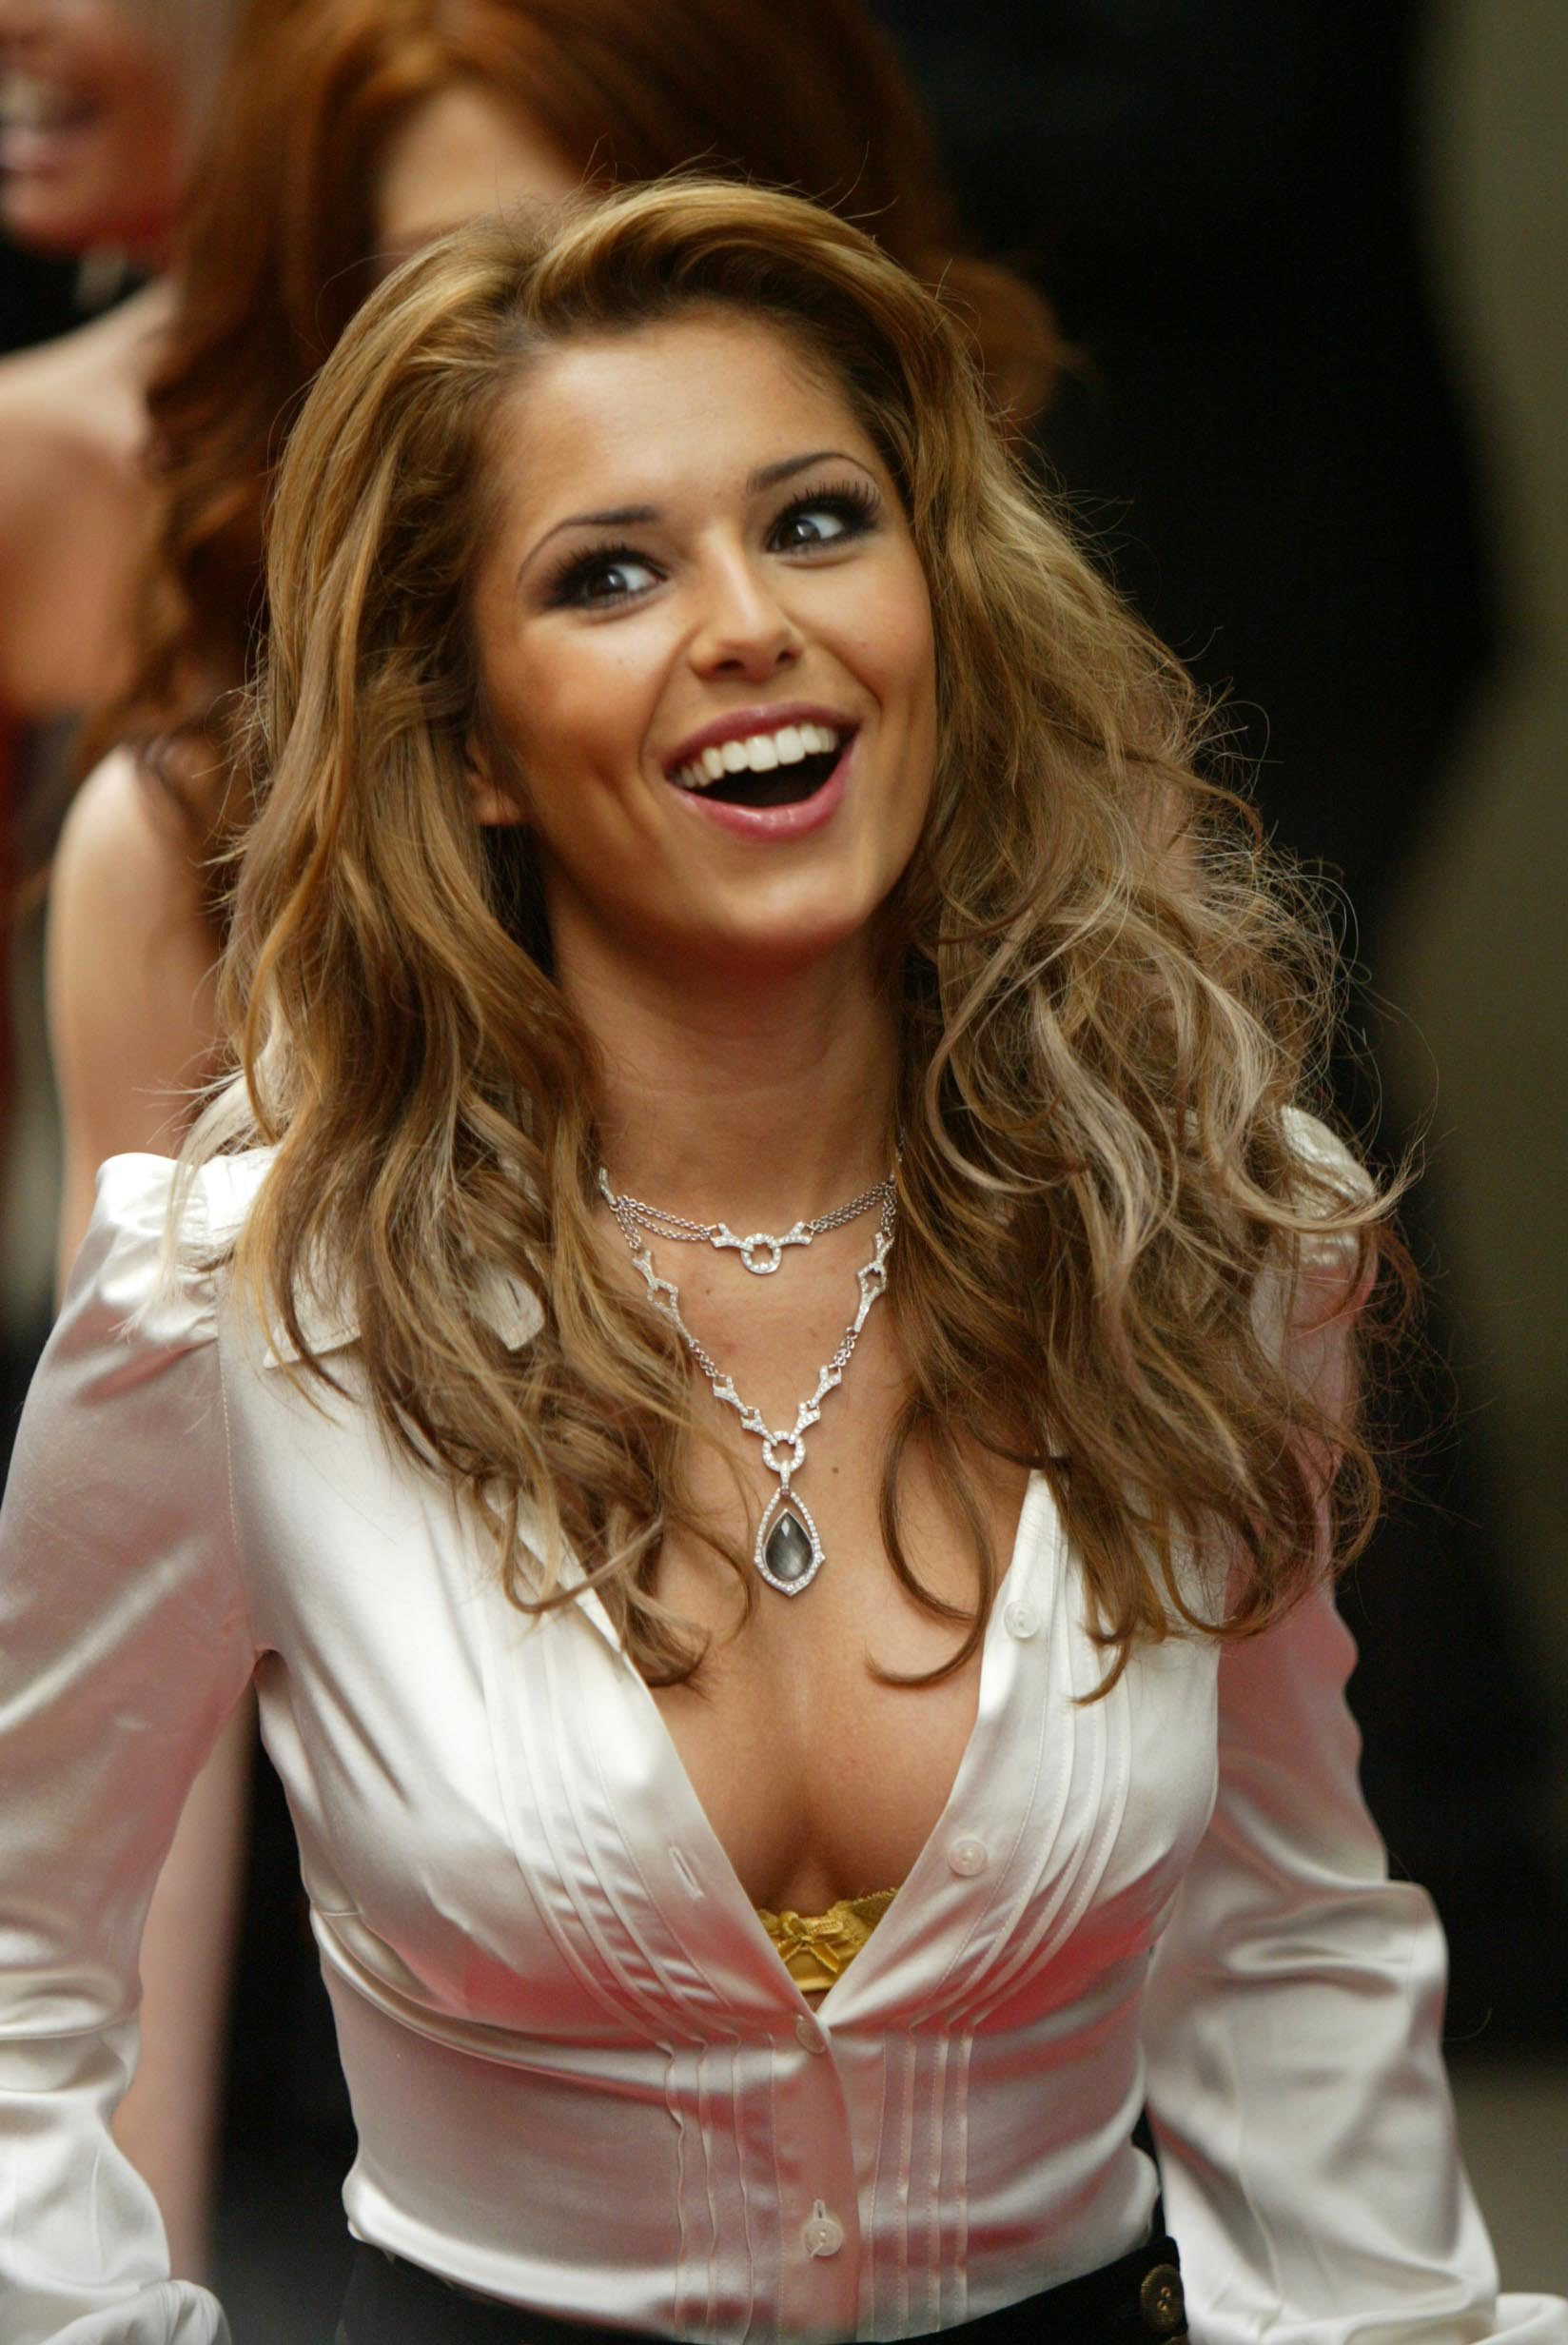 Cheryl Cole Tweedy 1 Wallpaper, Desktop, HD, Free Download ... Cheryl Cole Photos